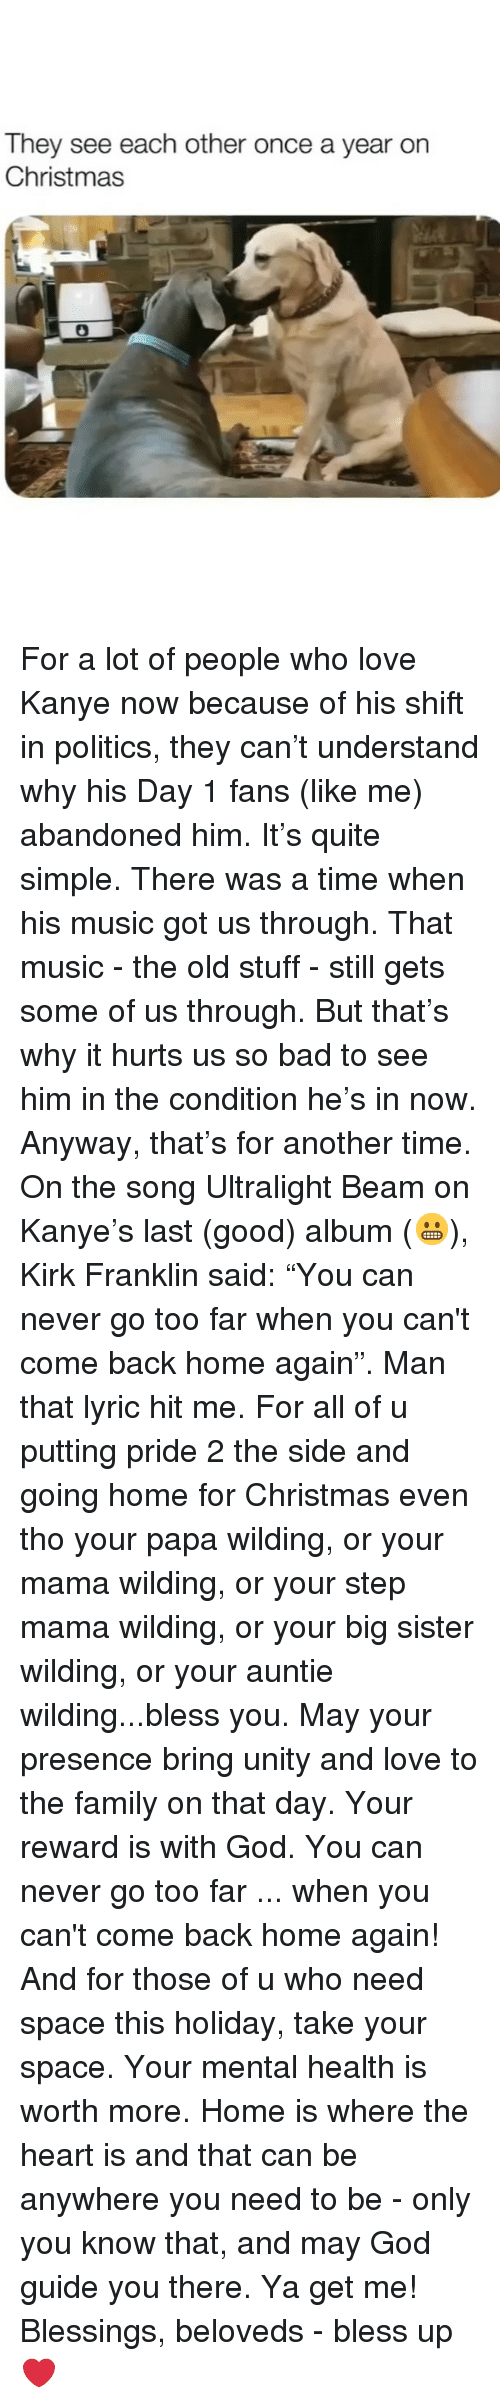 """Unity: They see each other once a year on  Christmas For a lot of people who love Kanye now because of his shift in politics, they can't understand why his Day 1 fans (like me) abandoned him. It's quite simple. There was a time when his music got us through. That music - the old stuff - still gets some of us through. But that's why it hurts us so bad to see him in the condition he's in now. Anyway, that's for another time. On the song Ultralight Beam on Kanye's last (good) album (😬), Kirk Franklin said: """"You can never go too far when you can't come back home again"""". Man that lyric hit me. For all of u putting pride 2 the side and going home for Christmas even tho your papa wilding, or your mama wilding, or your step mama wilding, or your big sister wilding, or your auntie wilding...bless you. May your presence bring unity and love to the family on that day. Your reward is with God. You can never go too far ... when you can't come back home again! And for those of u who need space this holiday, take your space. Your mental health is worth more. Home is where the heart is and that can be anywhere you need to be - only you know that, and may God guide you there. Ya get me! Blessings, beloveds - bless up ❤️"""